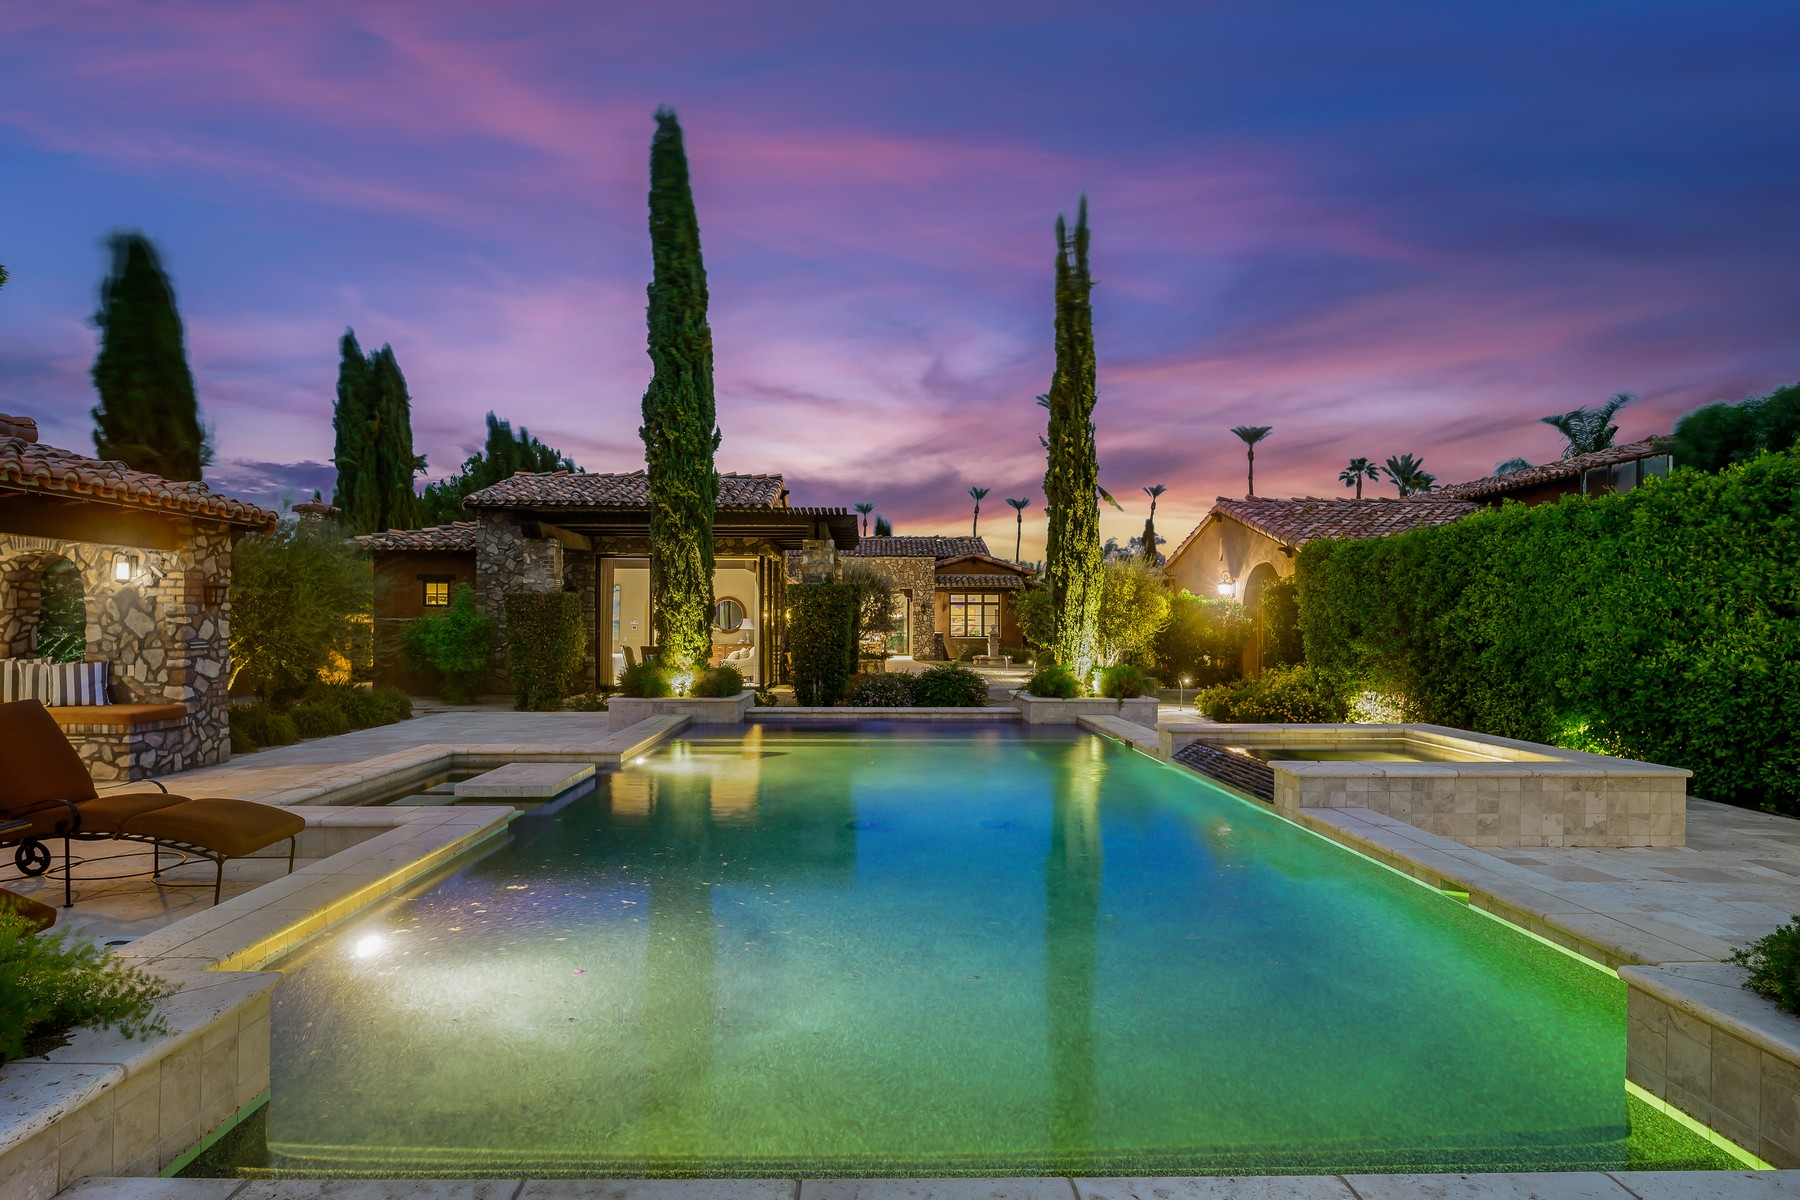 Single Family Homes for Sale at 1 Rancho Clancy Rancho Mirage, California 92270 United States